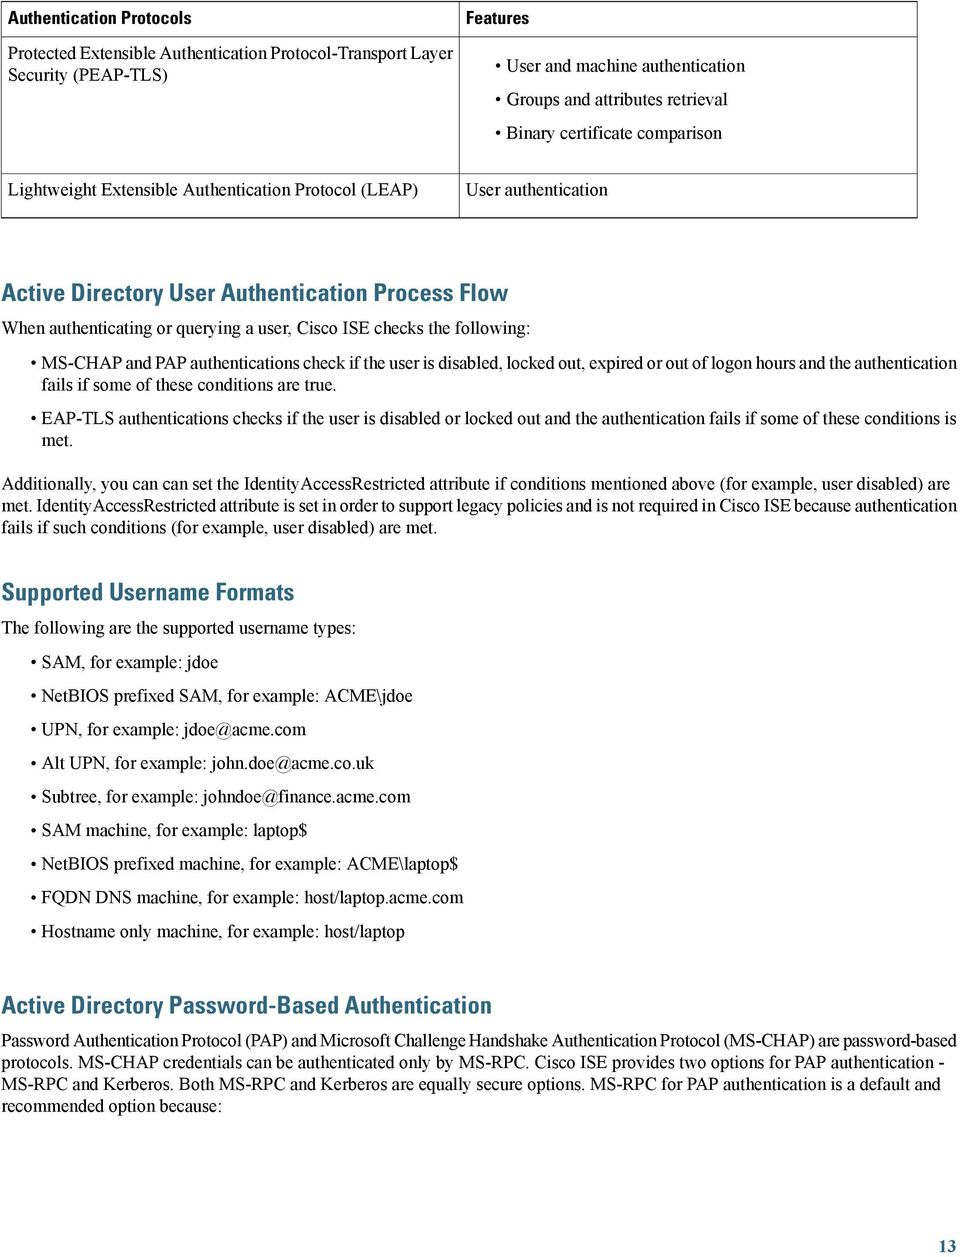 Active Directory Integration with Cisco ISE PDF